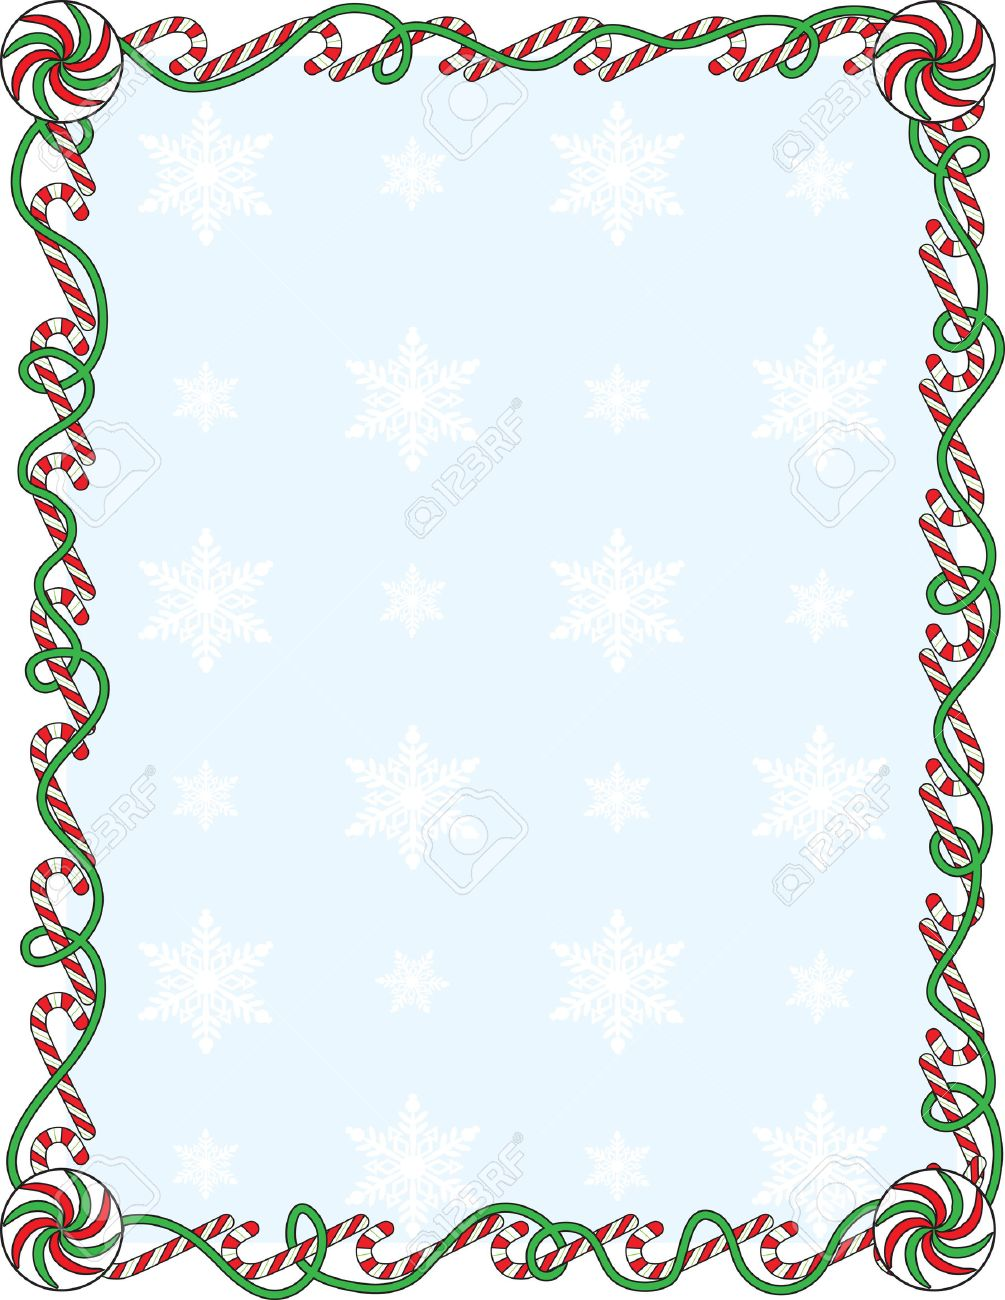 hight resolution of a border or frame with candy canes and ribbons stock vector 5799892